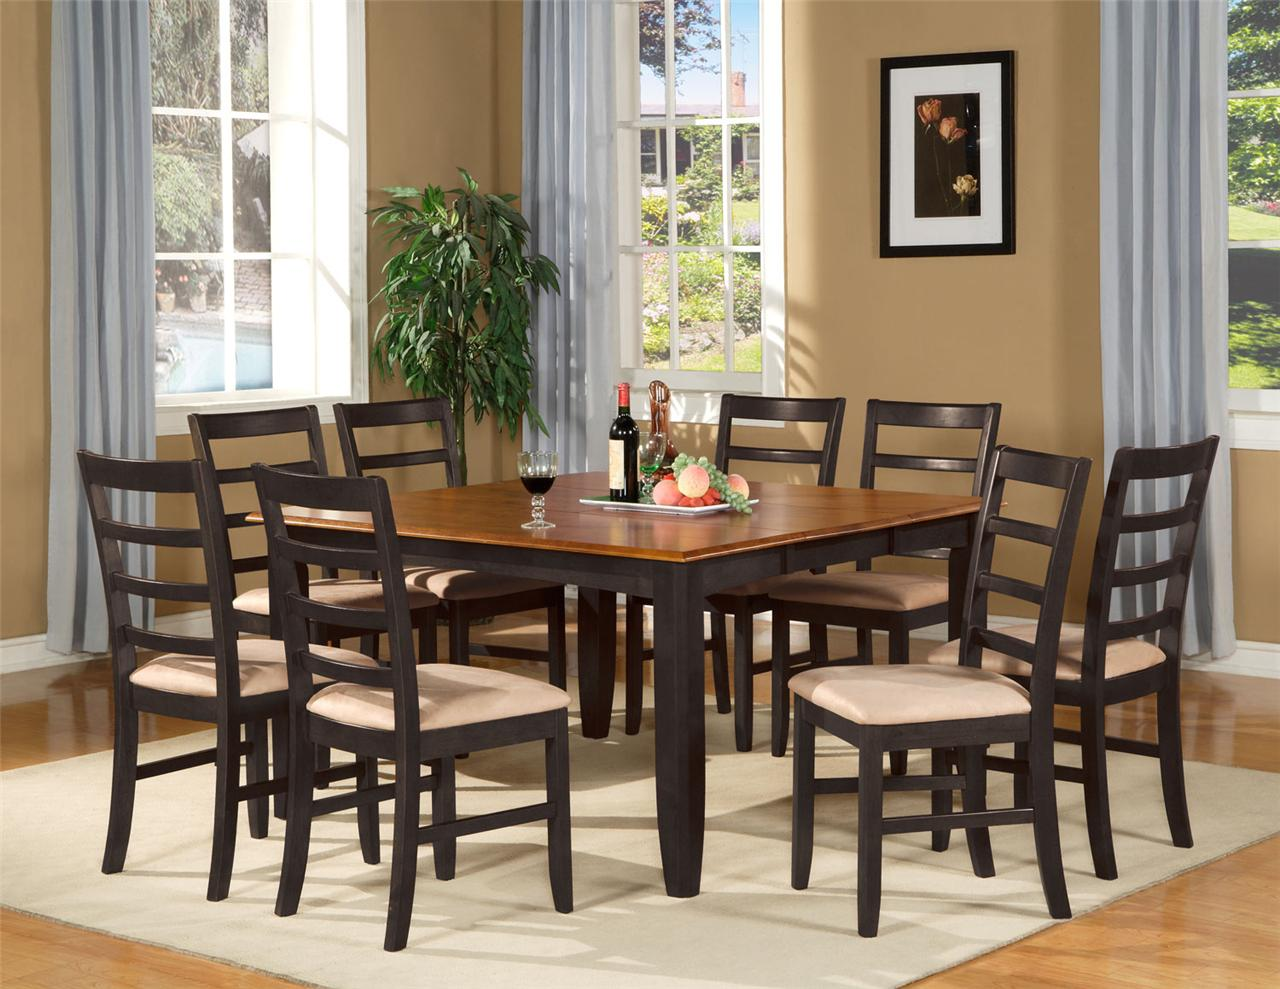 square dining room tables for 8 | 9 PC SQUARE DINETTE DINING ROOM TABLE SET AND 8 CHAIRS | eBay